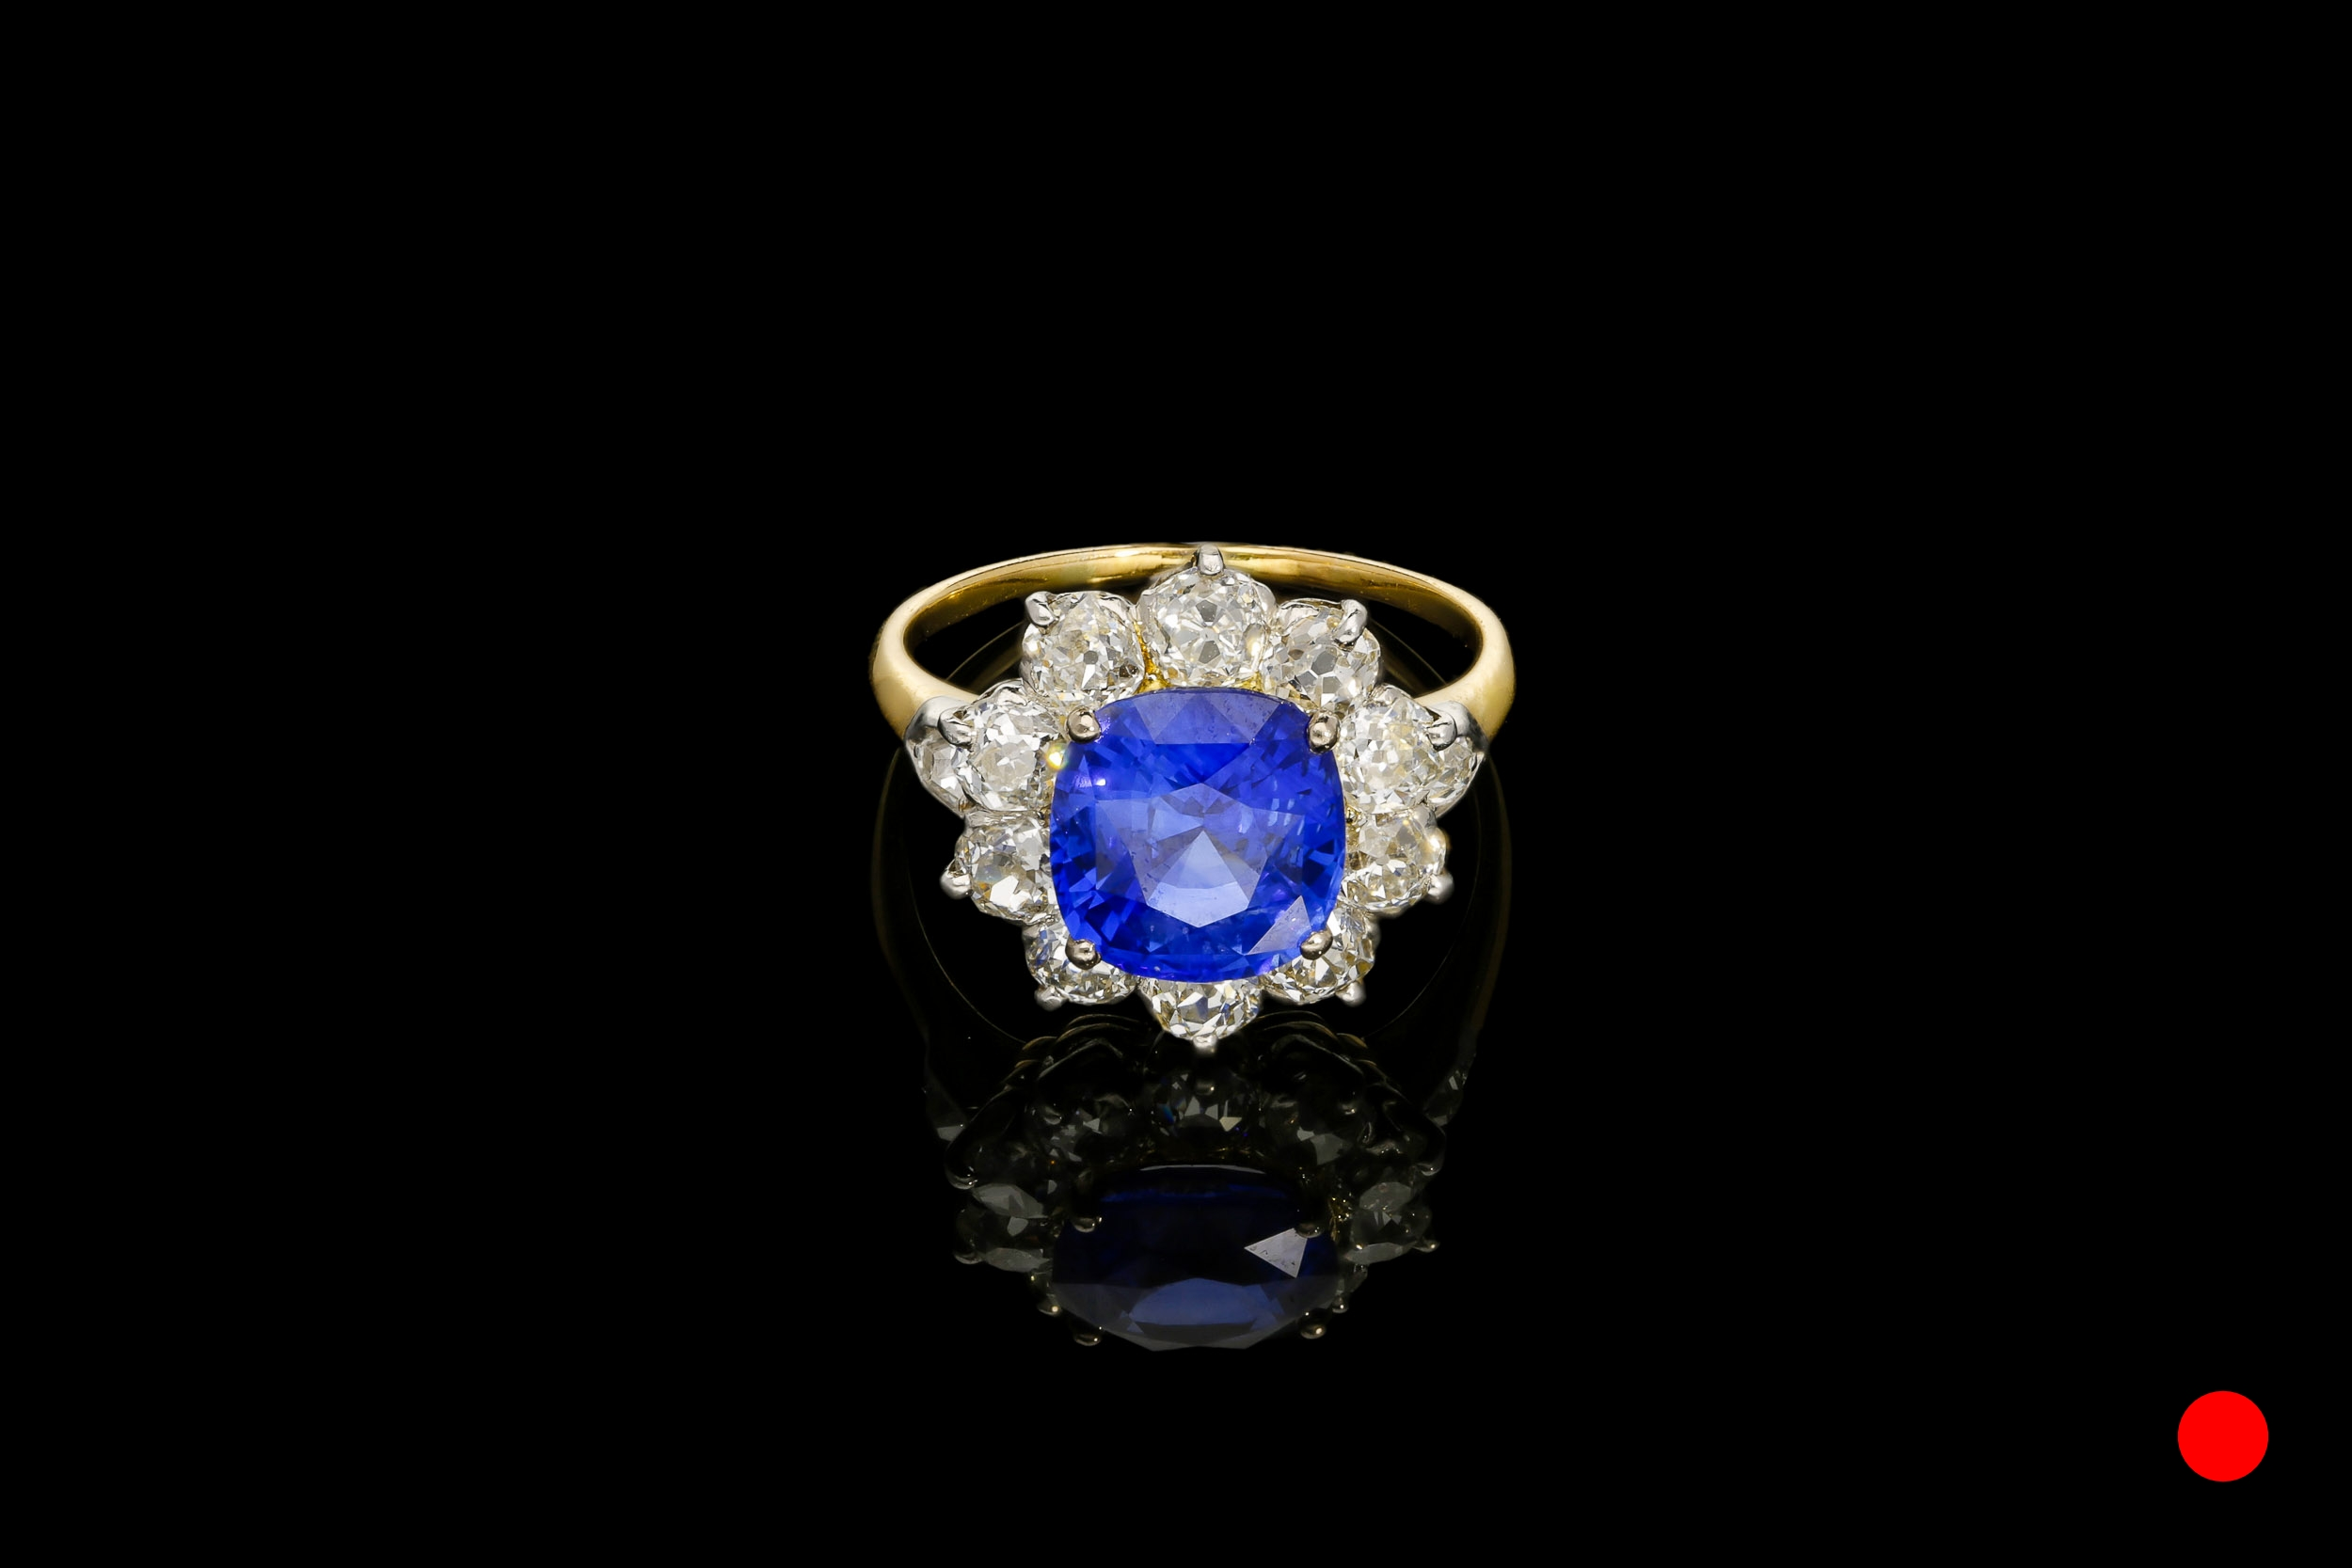 An Edwardian Old European ring | £18600